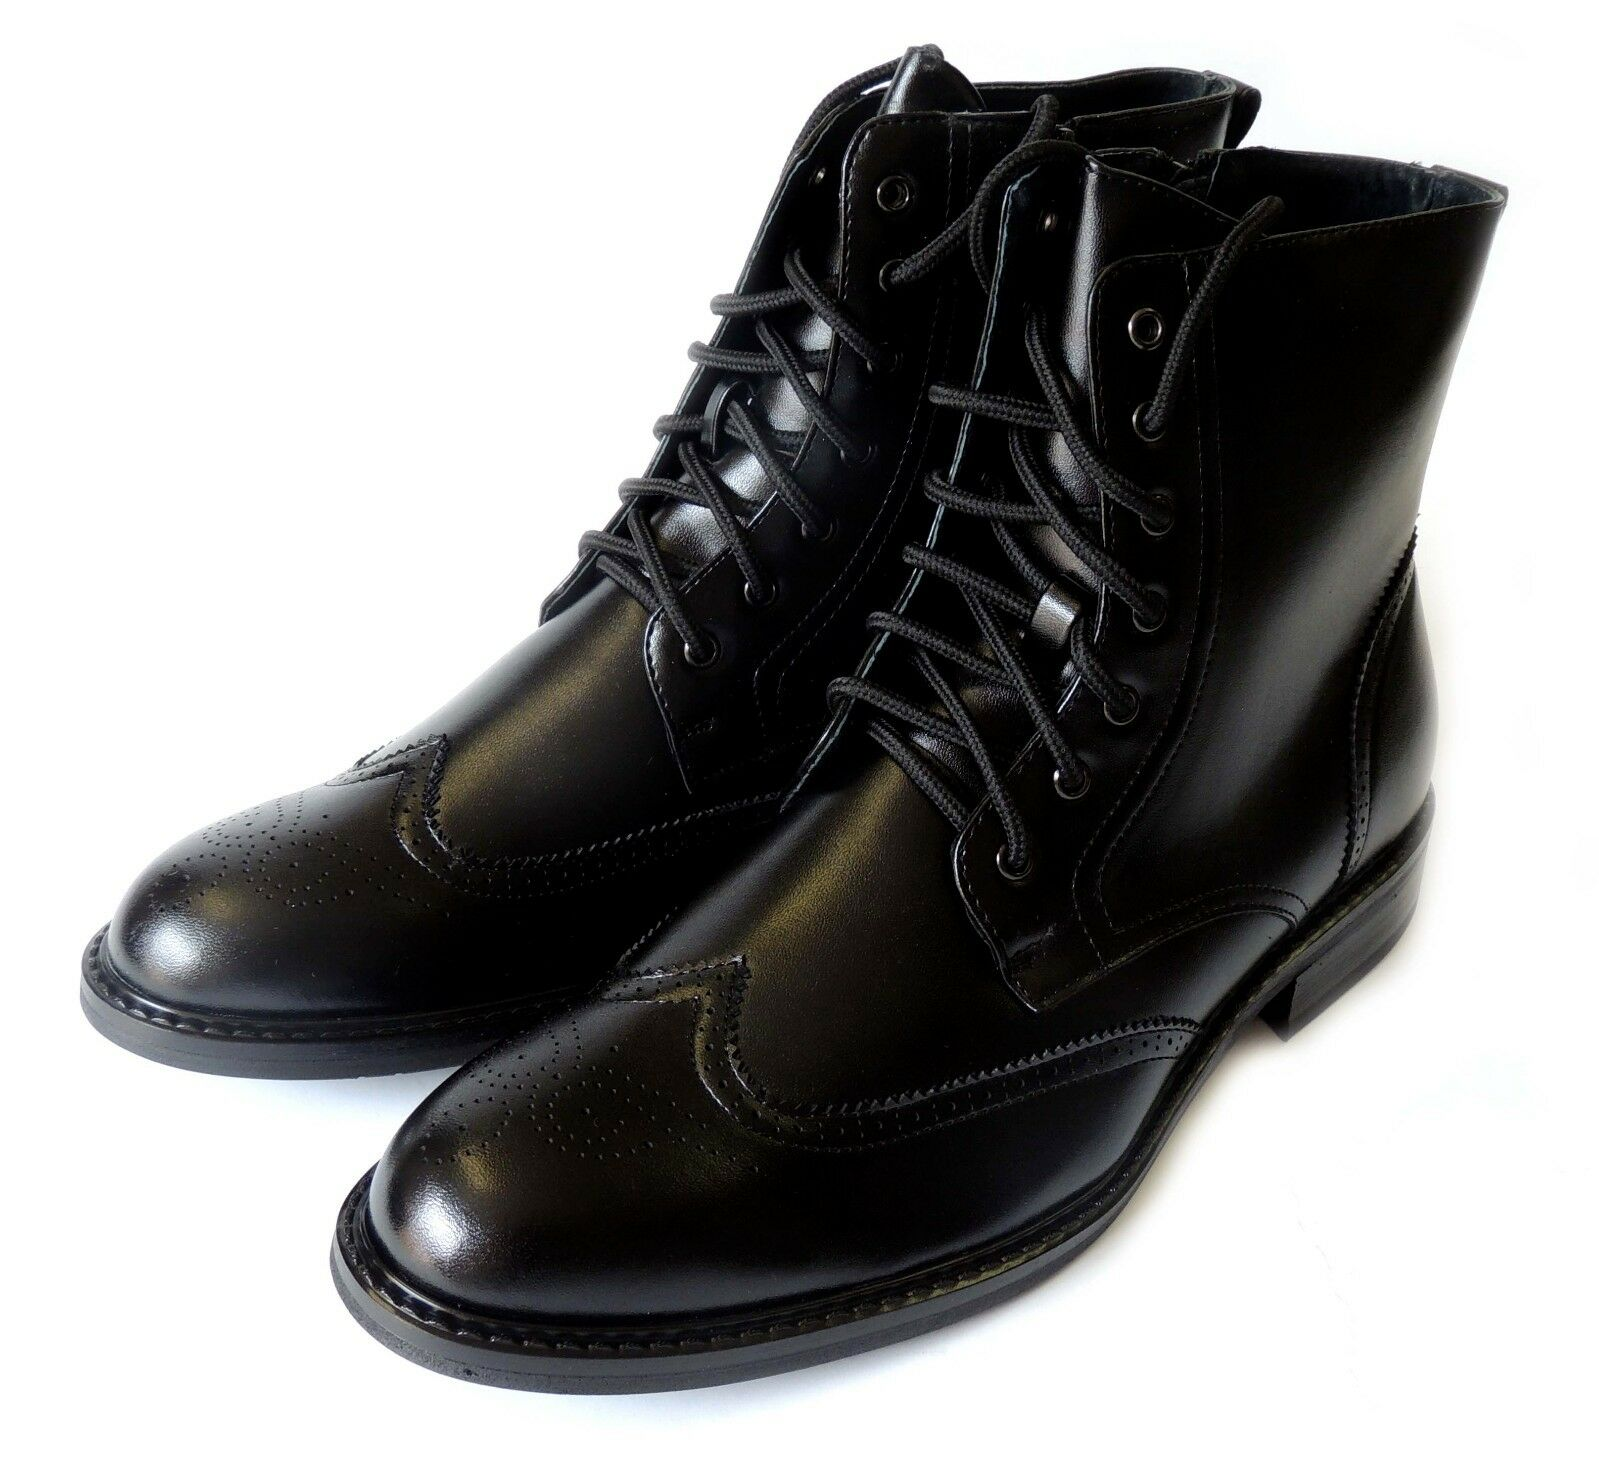 NEW *DELLI ALDO* MENS HIGH ANKLE BOOTS LACEUP OXFORDS WING TIP DRESS SHOES/BLACK